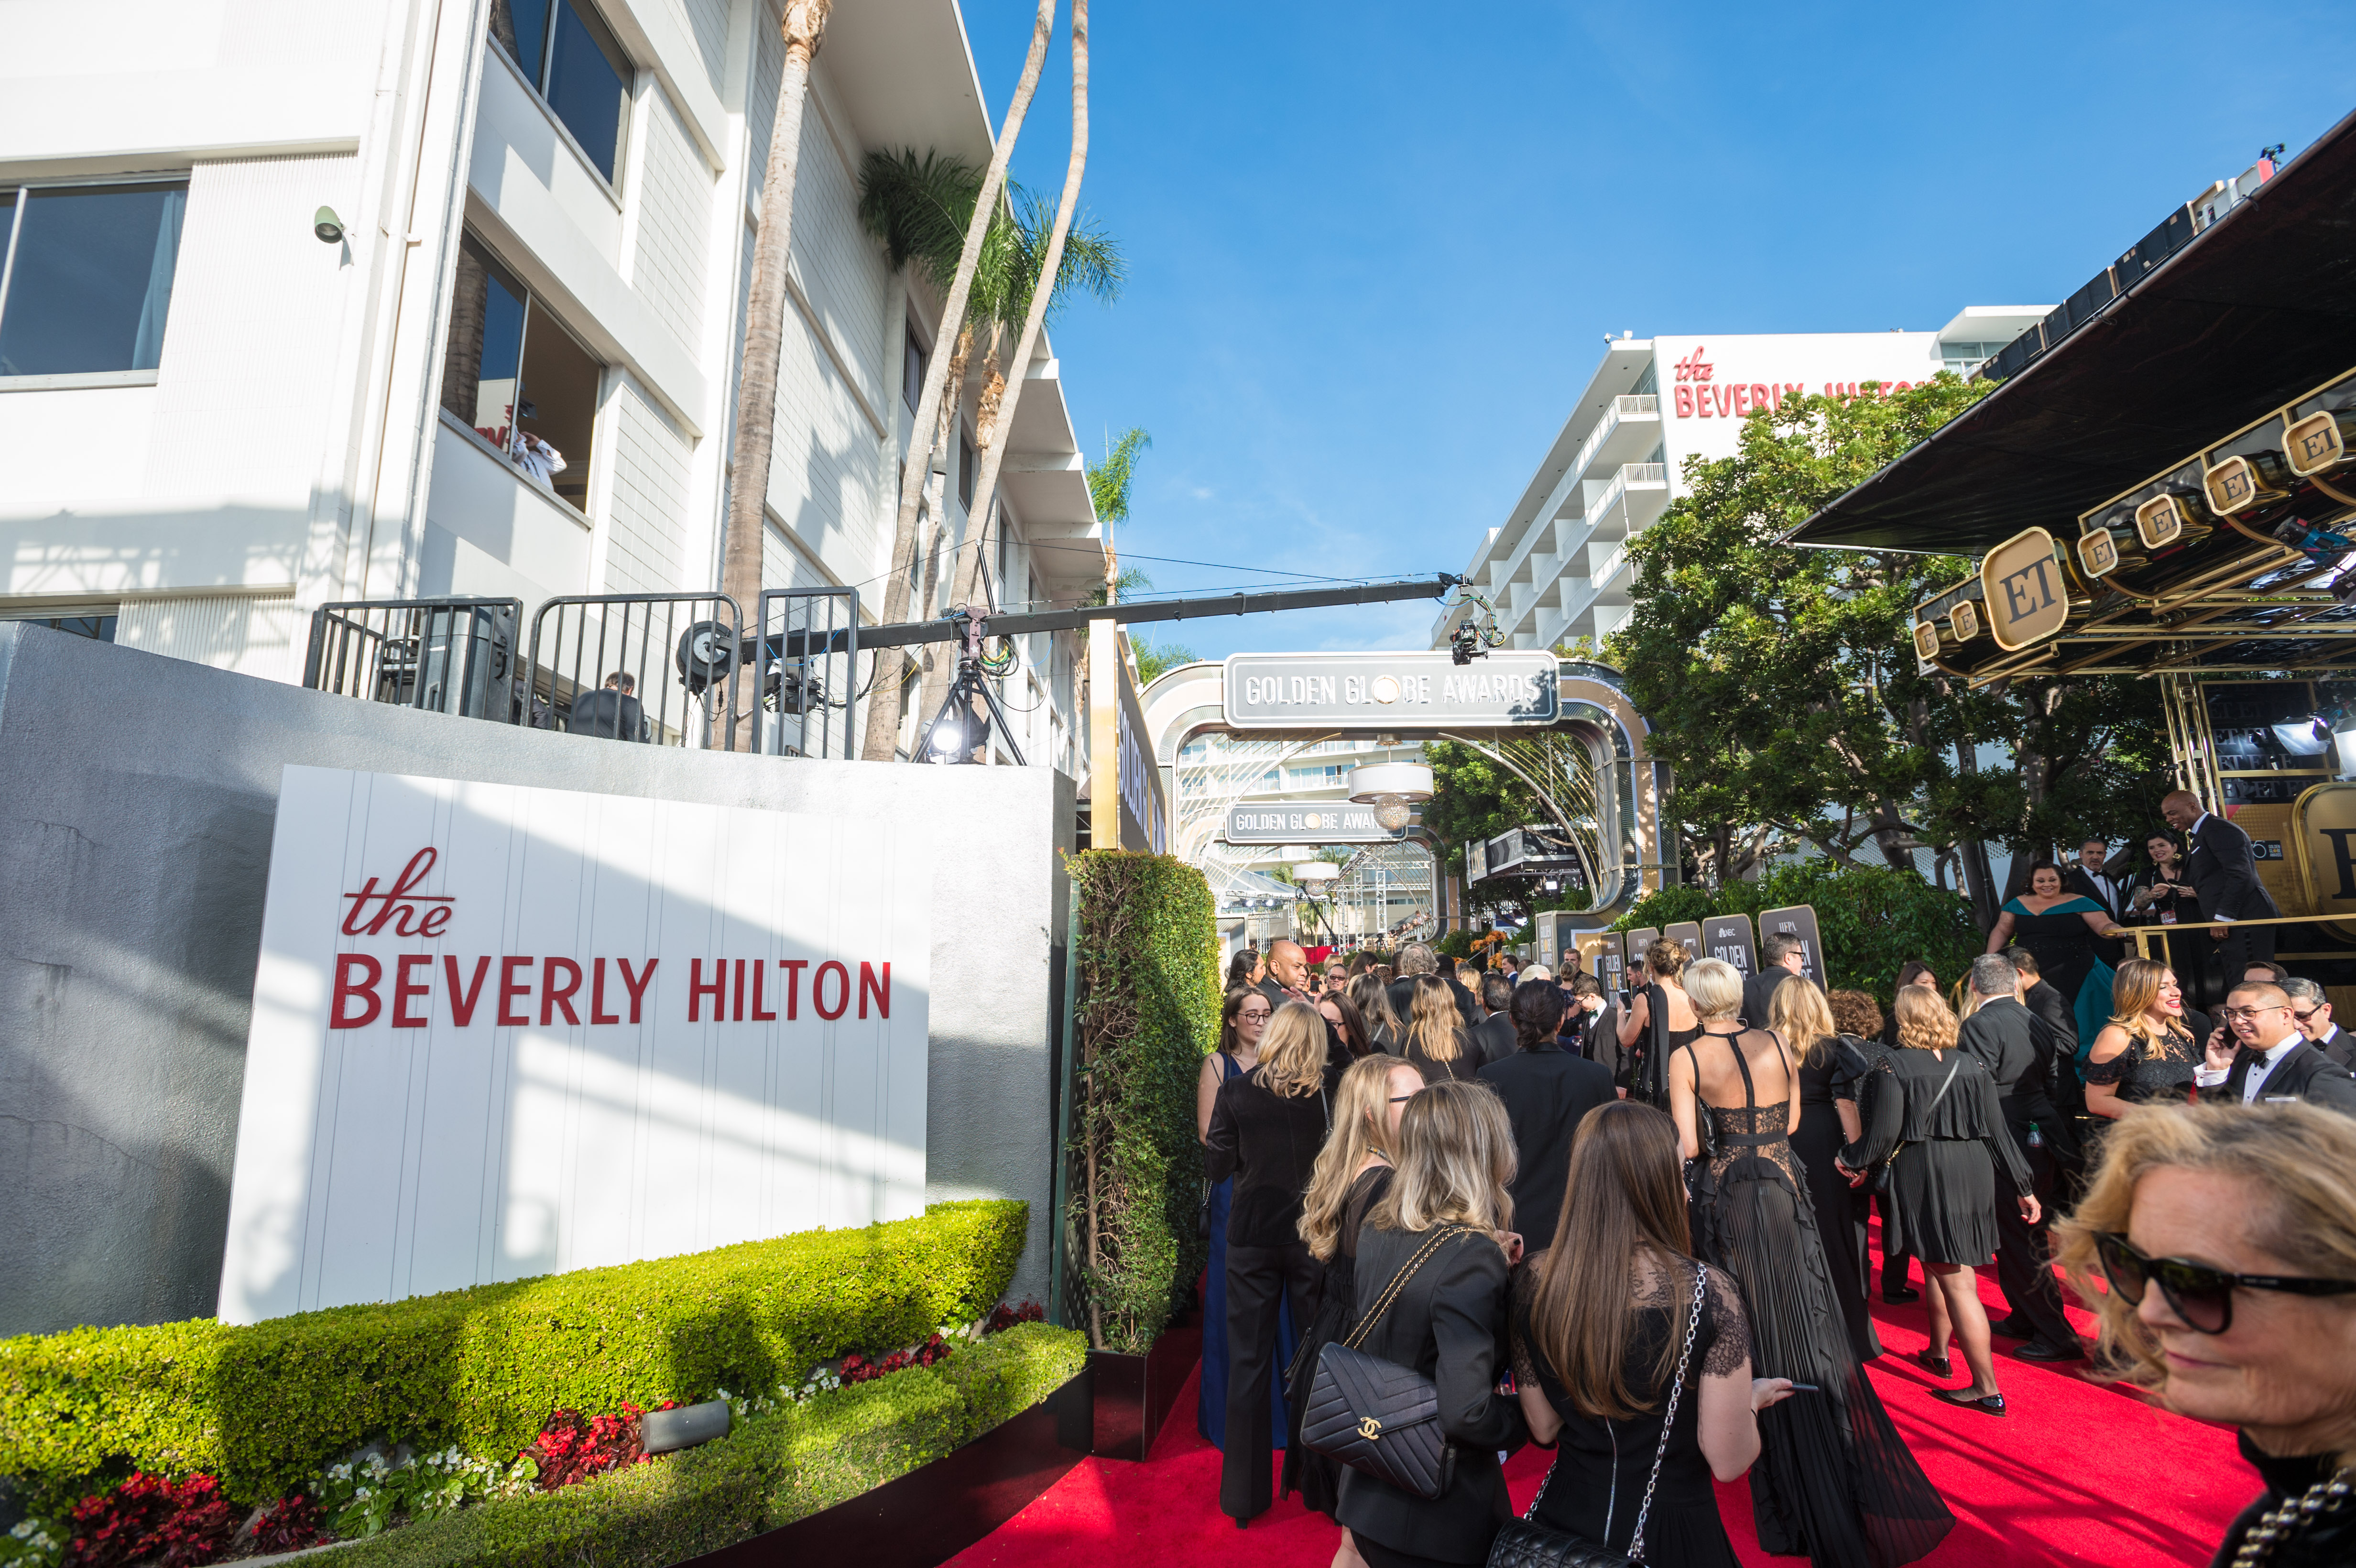 The red carpet at the 75th Annual Golden Globes Awards at the Beverly Hilton in Beverly Hills, CA on Sunday, January 7, 2018.